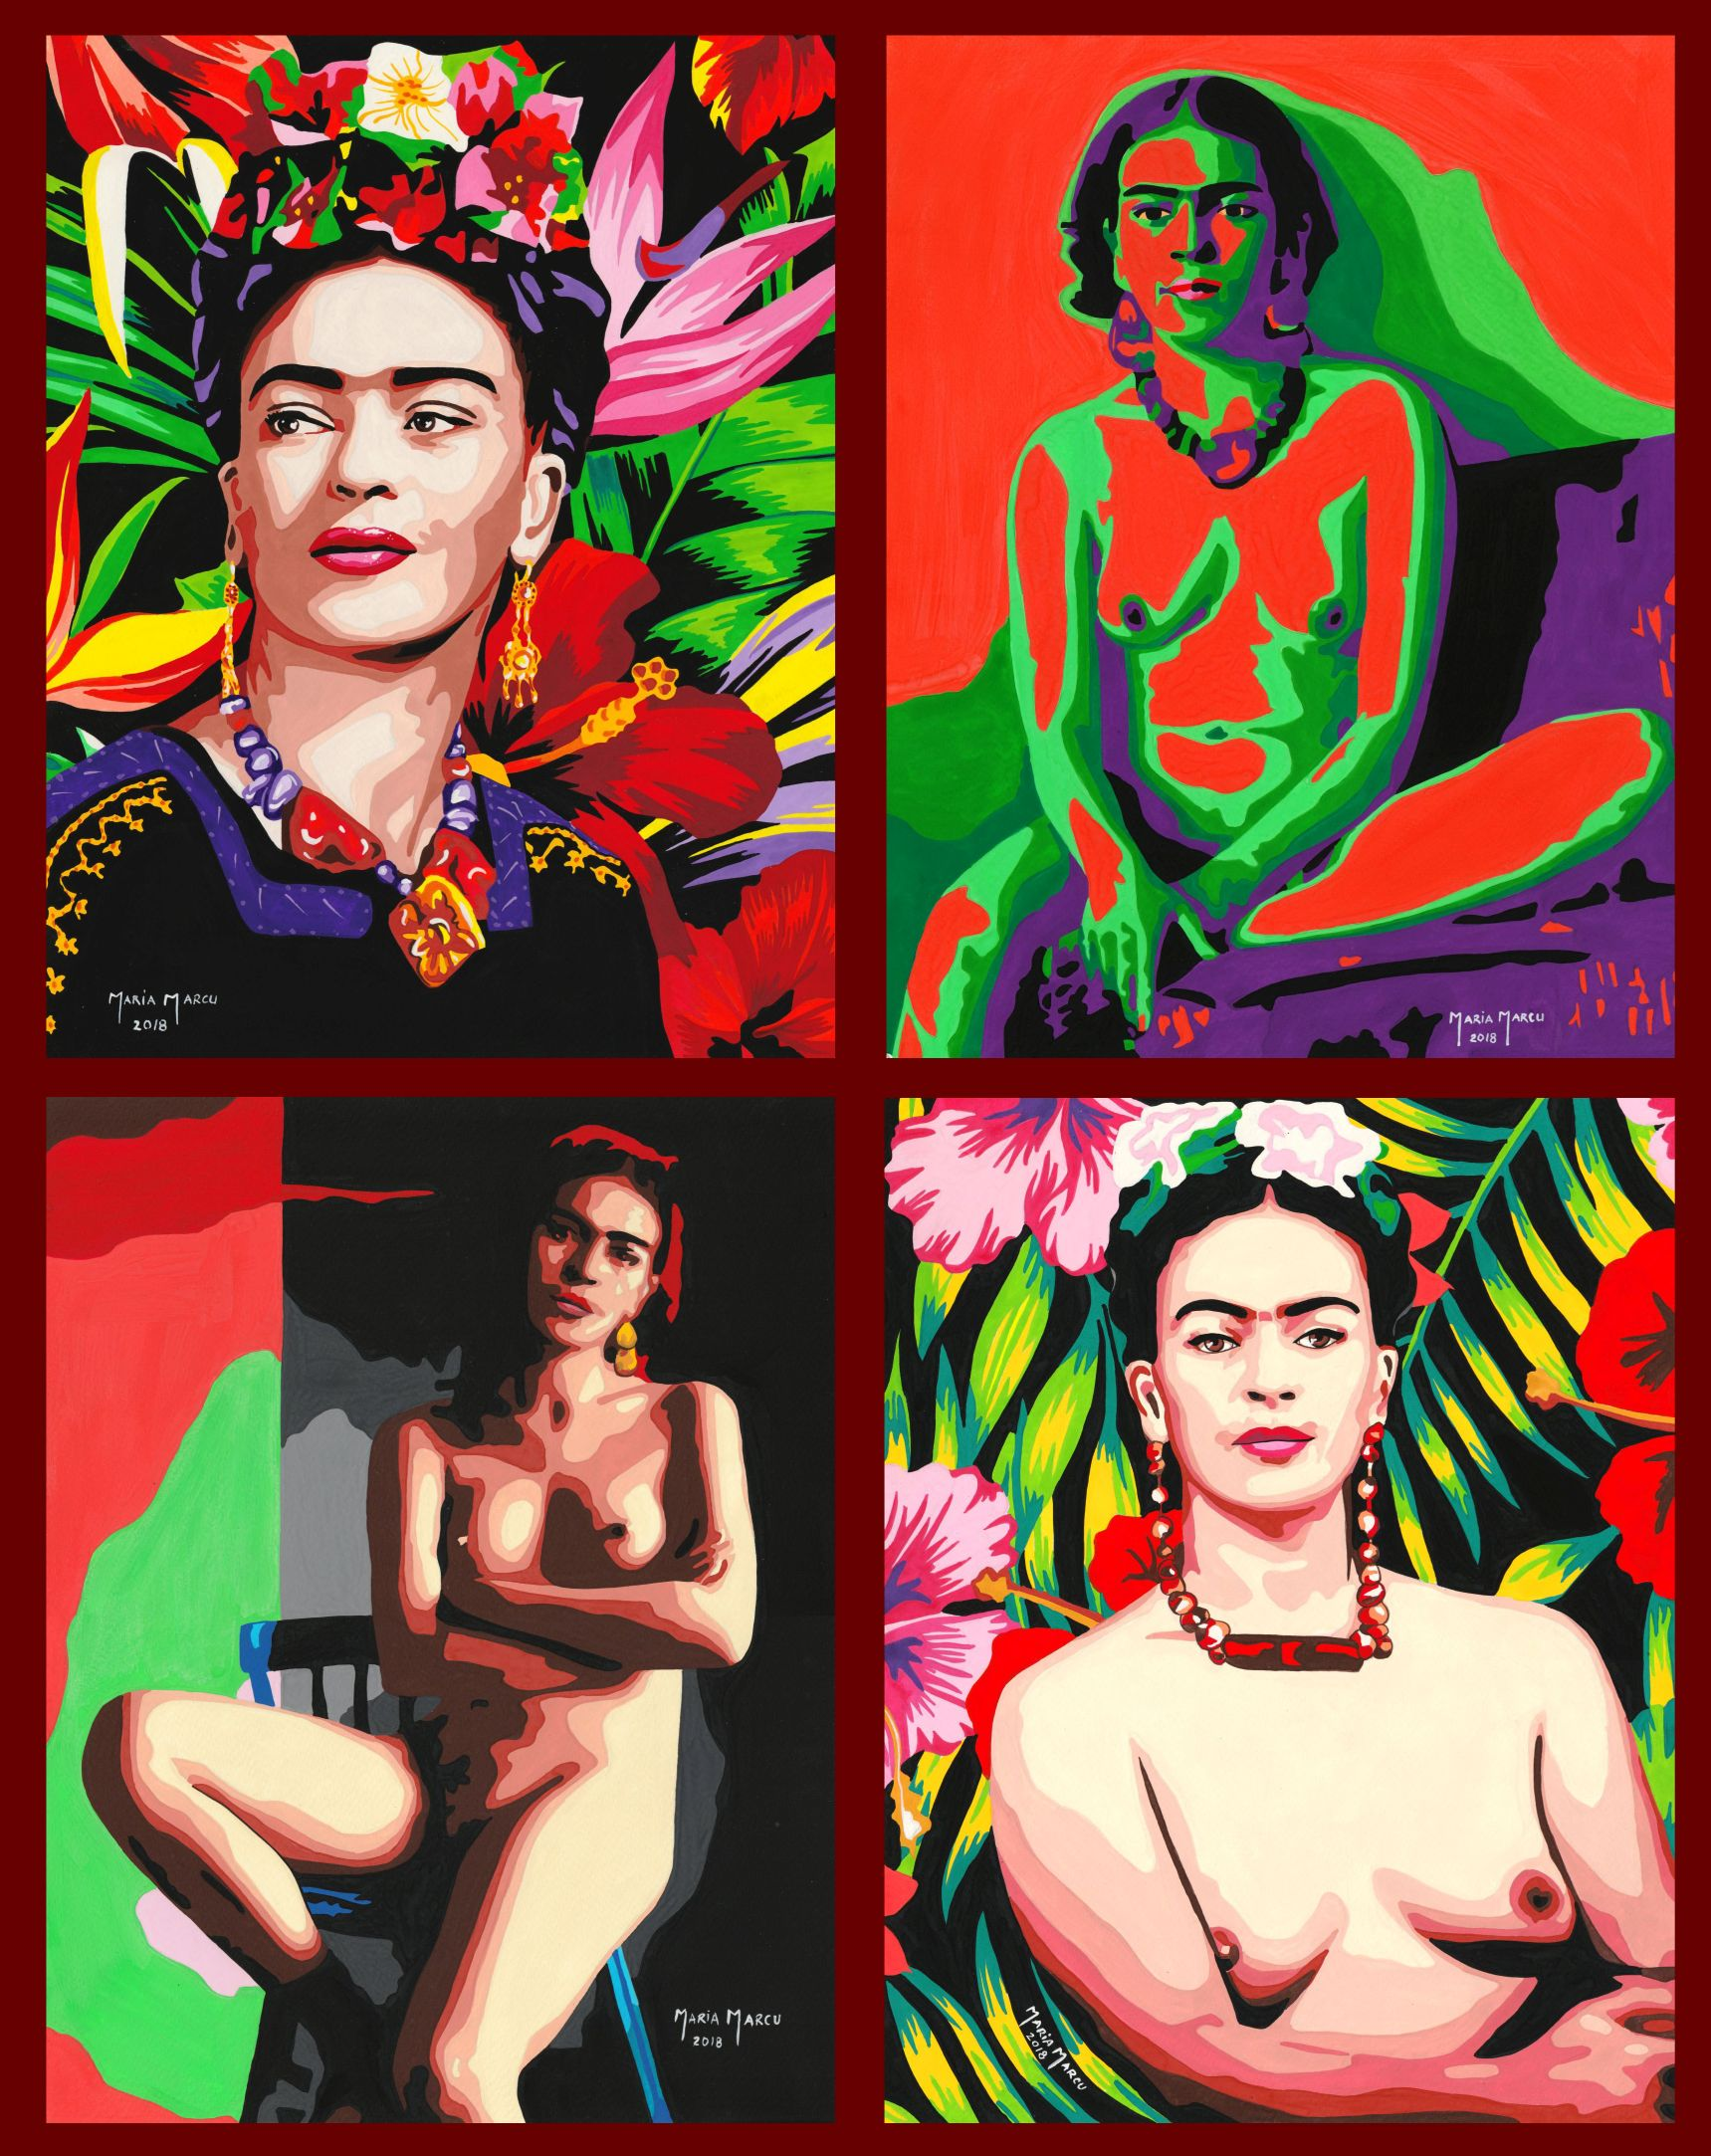 code-0085-tribute-to-frida-kahlo-set-of-4-watercolors-by-maria-marcu